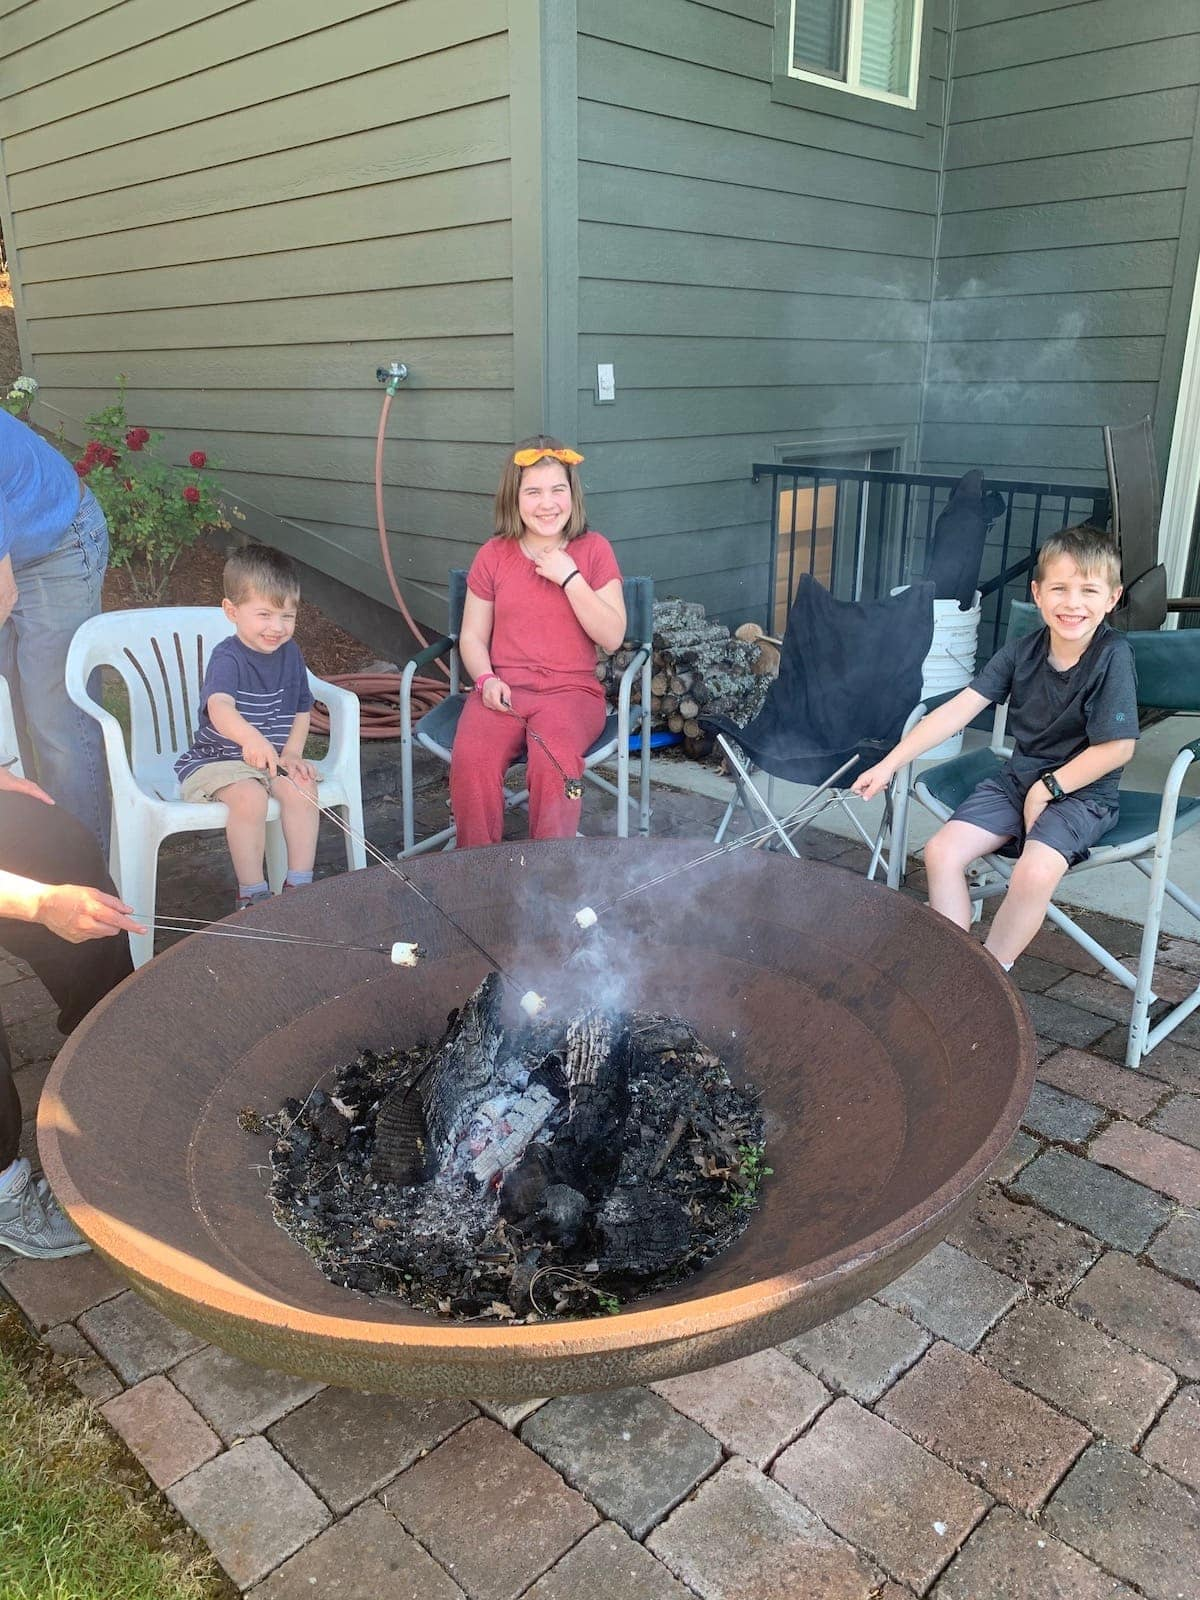 around the fire pit